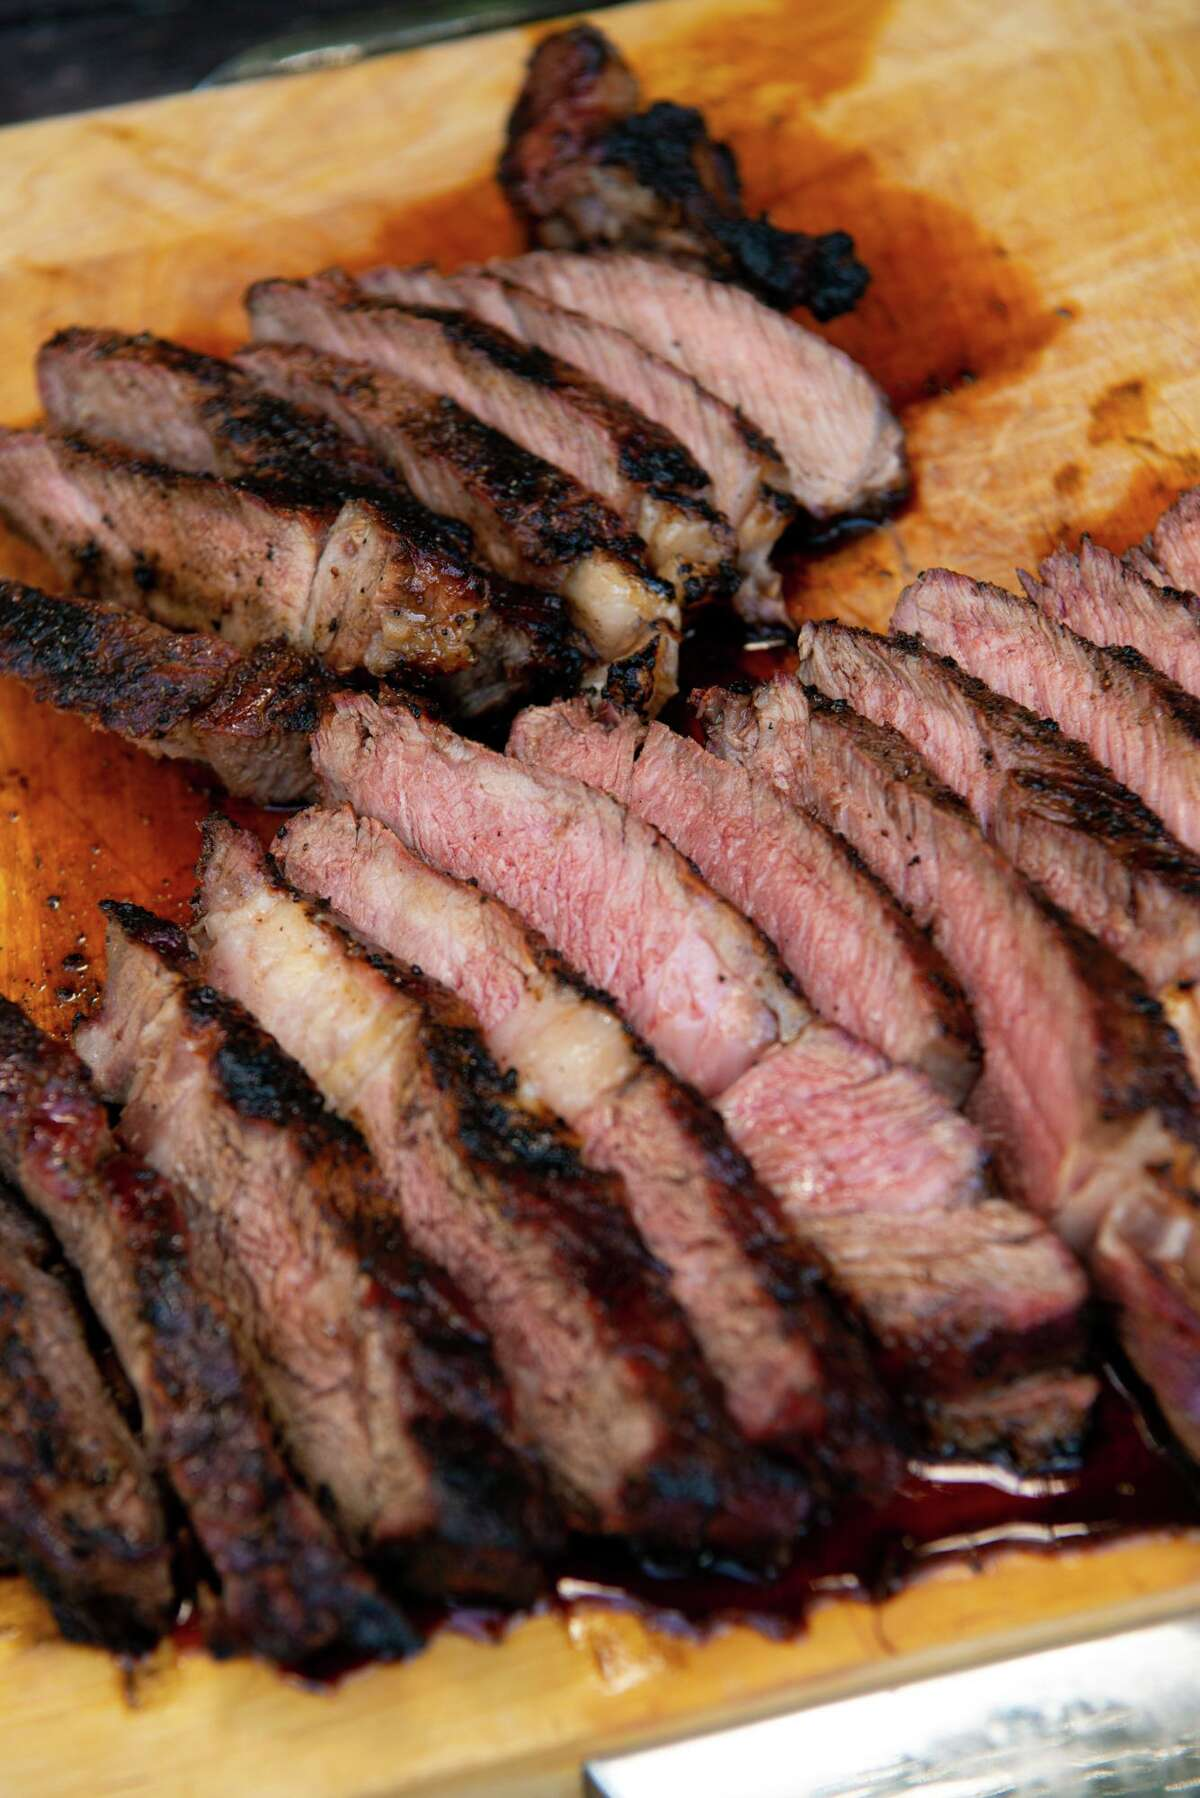 Rib-eye steaks of varying thickness were grilled and sliced in Chuck's Food Shack.